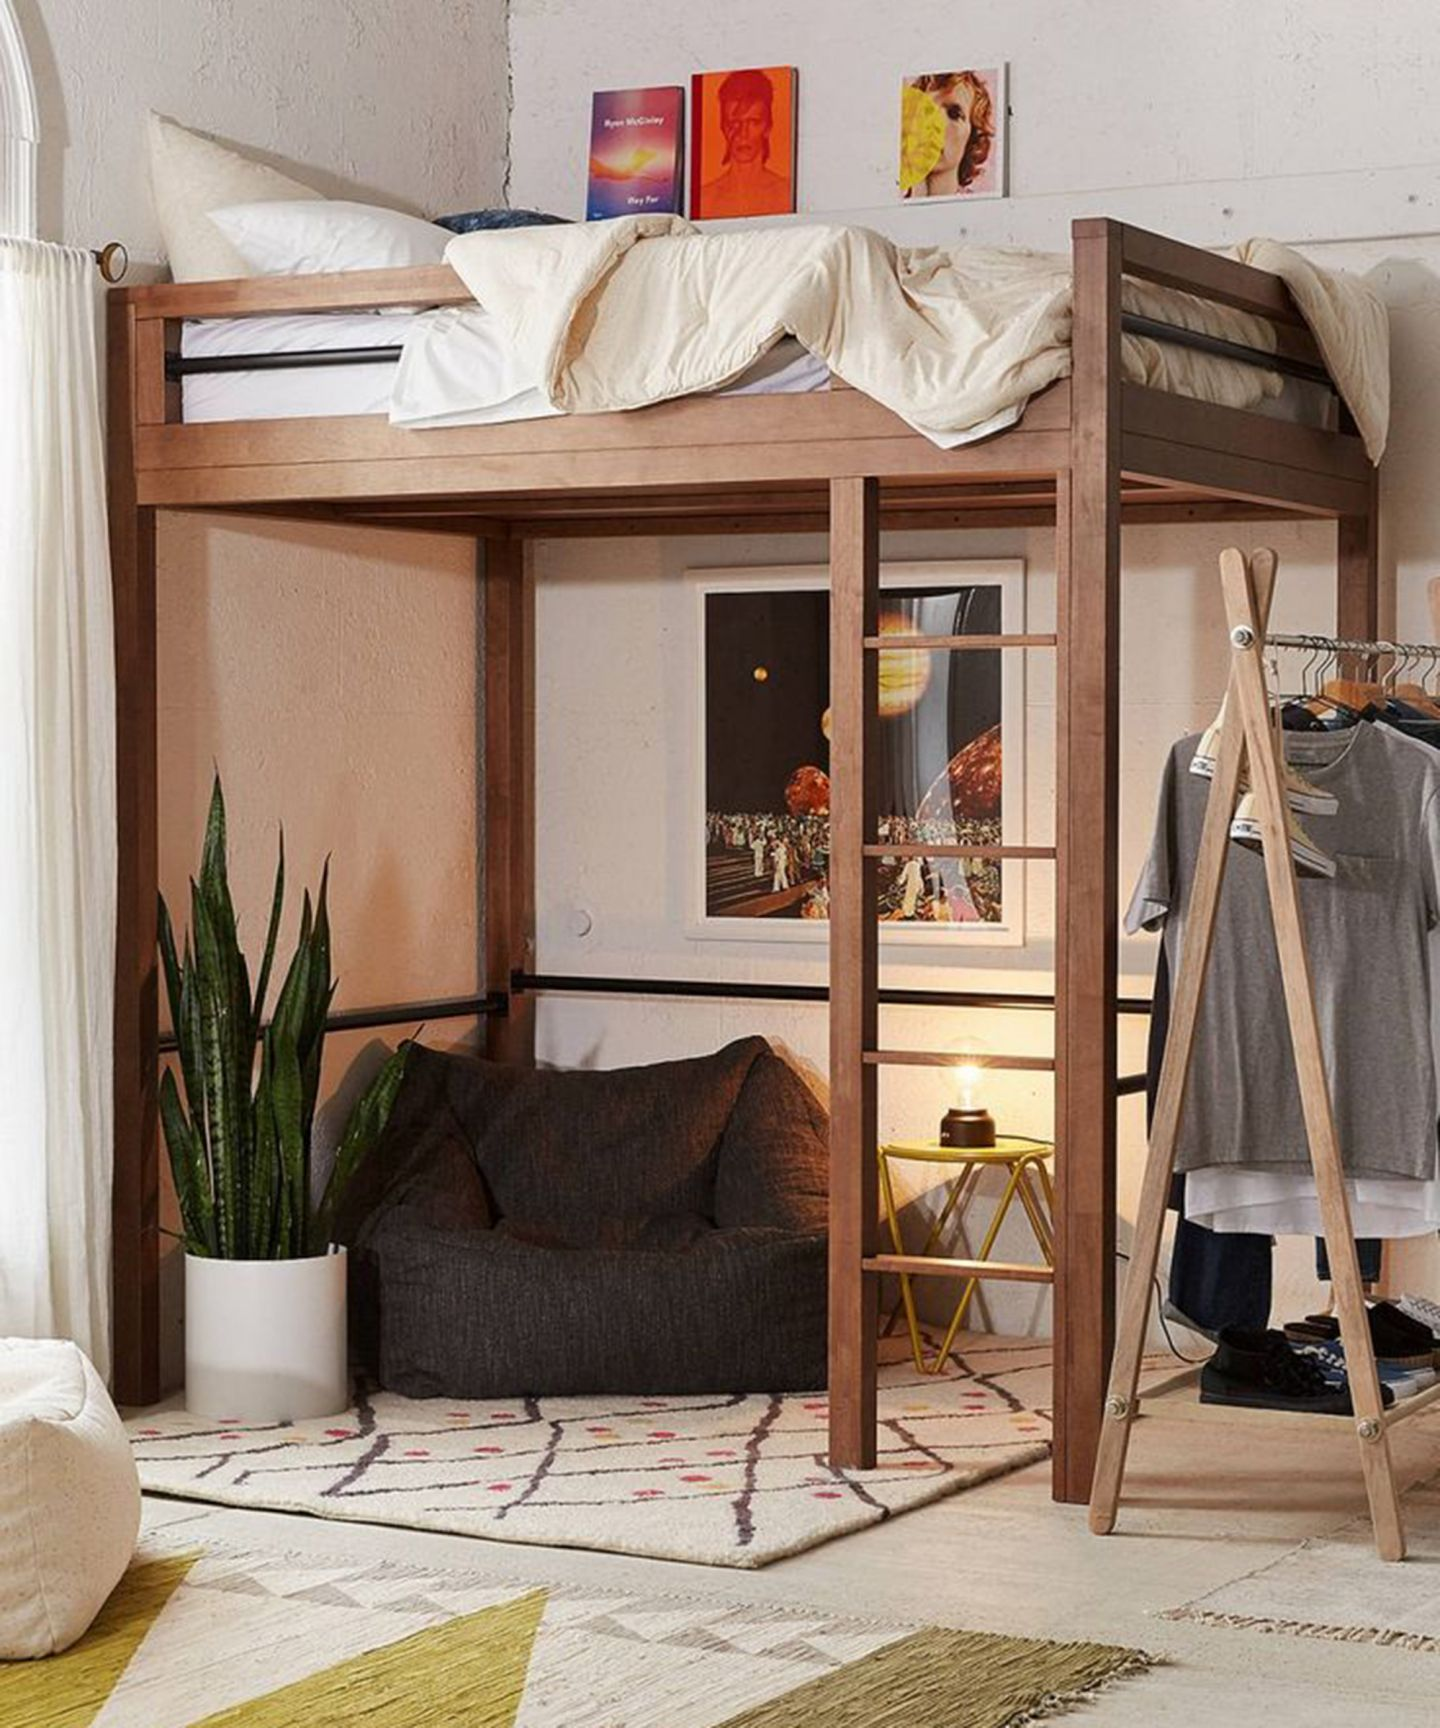 7 Decorating Ideas For Your Grown Up Loft Bed Adult Loft Bed Small Bedroom Queen Loft Beds